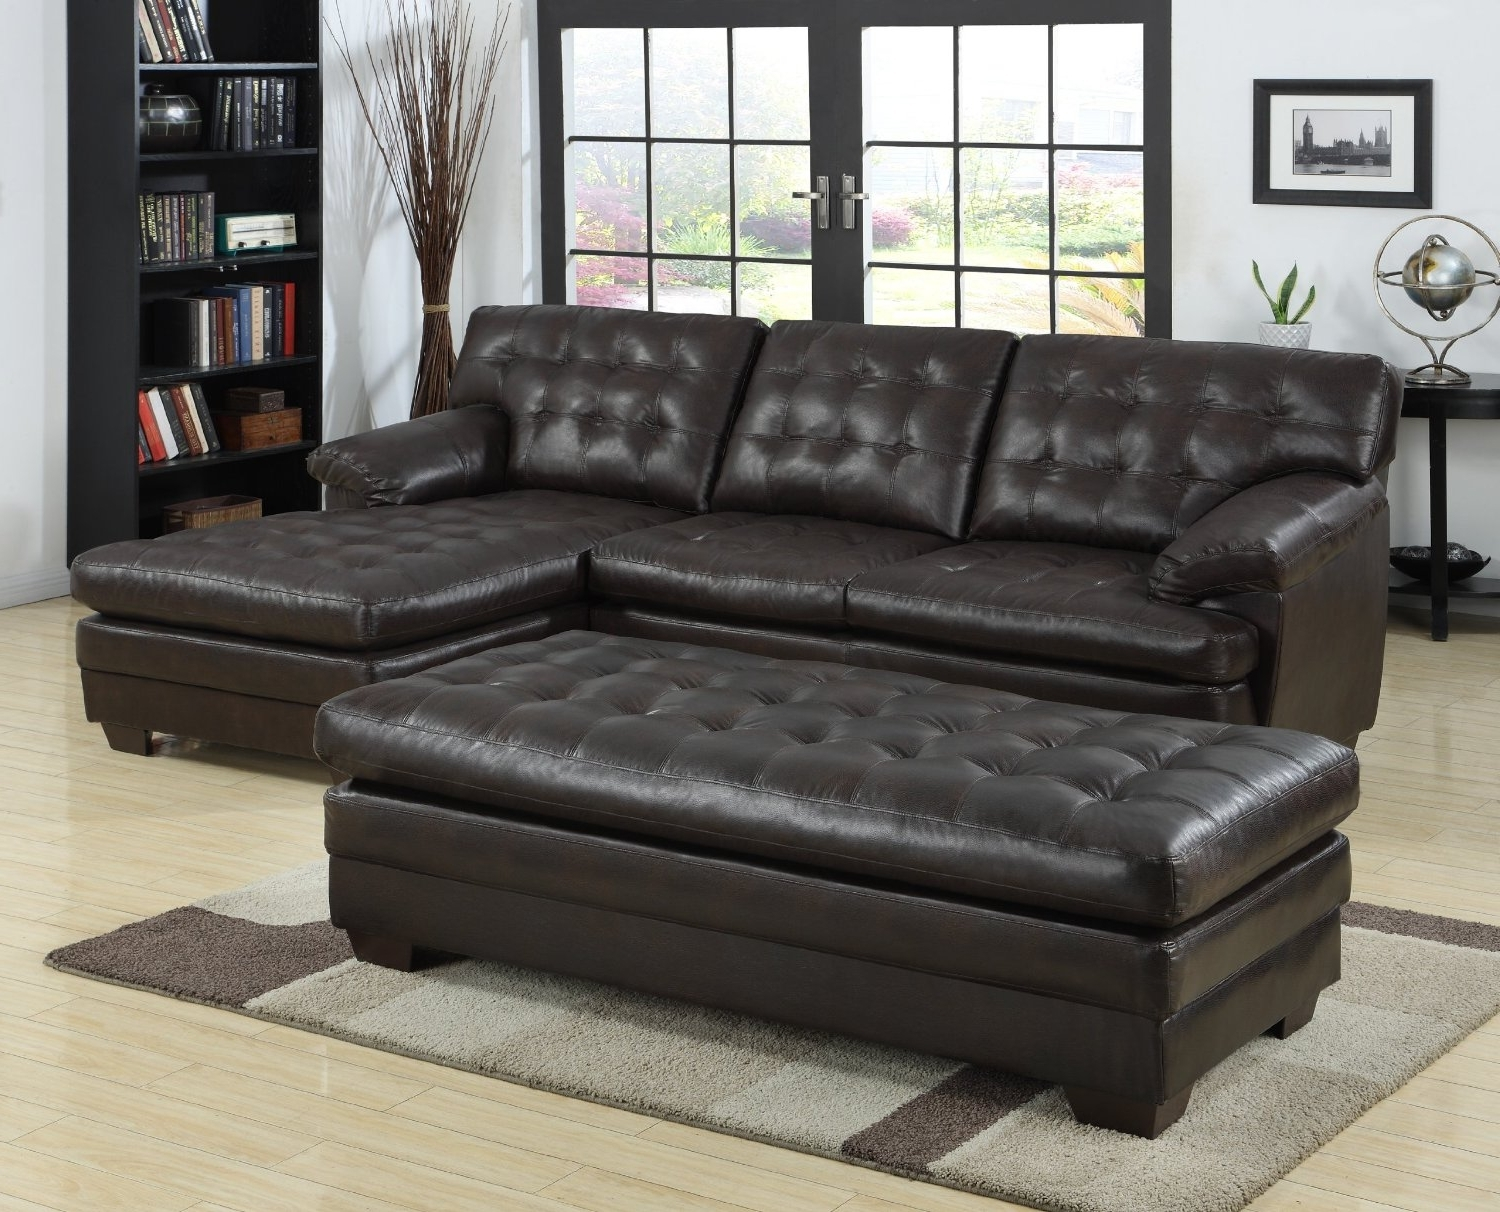 Preferred Leather Couches With Chaise Lounge Intended For Black Leather Sectional With Chaise Sectional Sofas With Recliners (View 12 of 15)